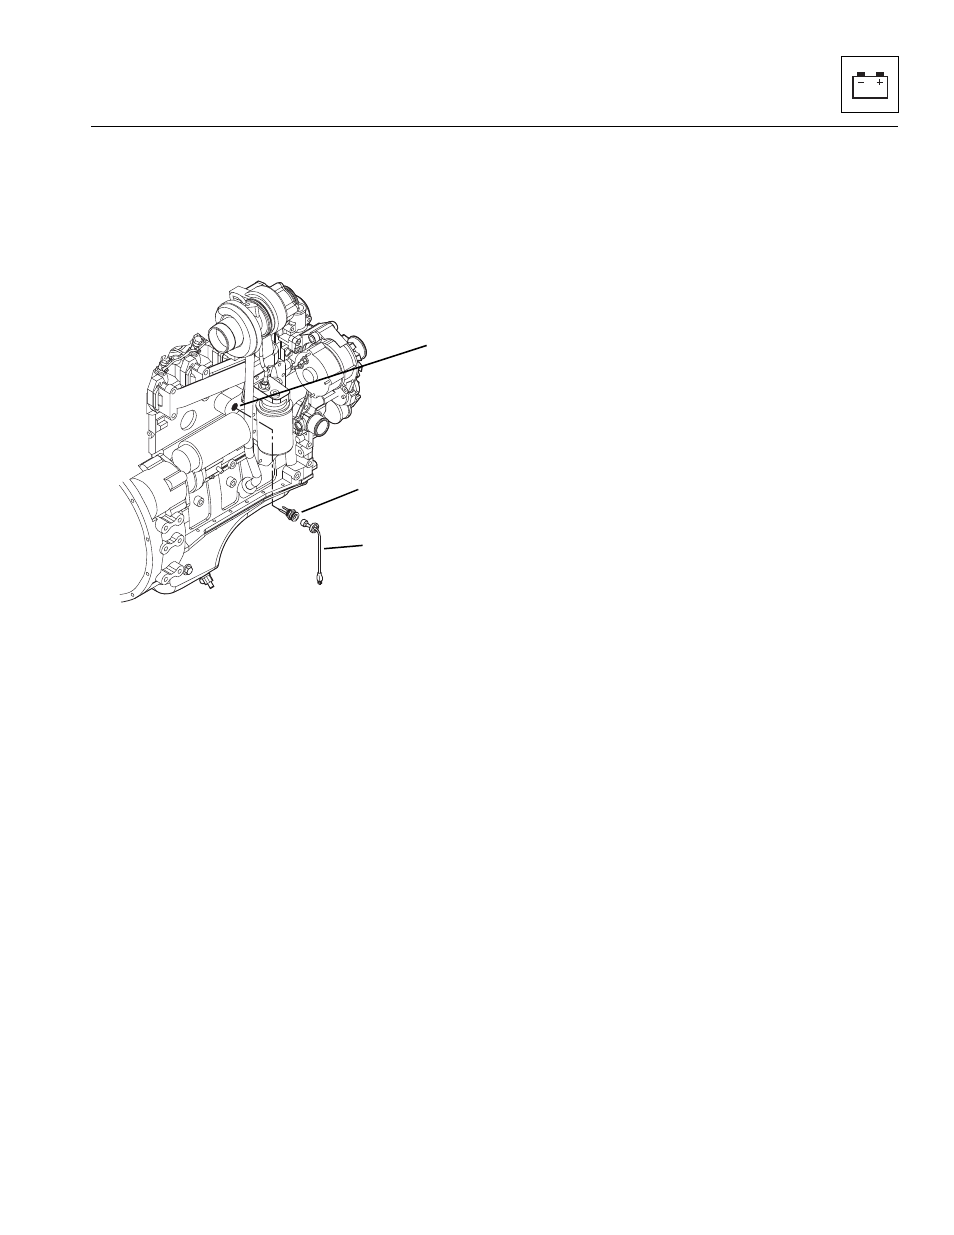 16 Engine Block Heater Lull 944e 42 Service Manual User Wiring Diagrams Page 751 846